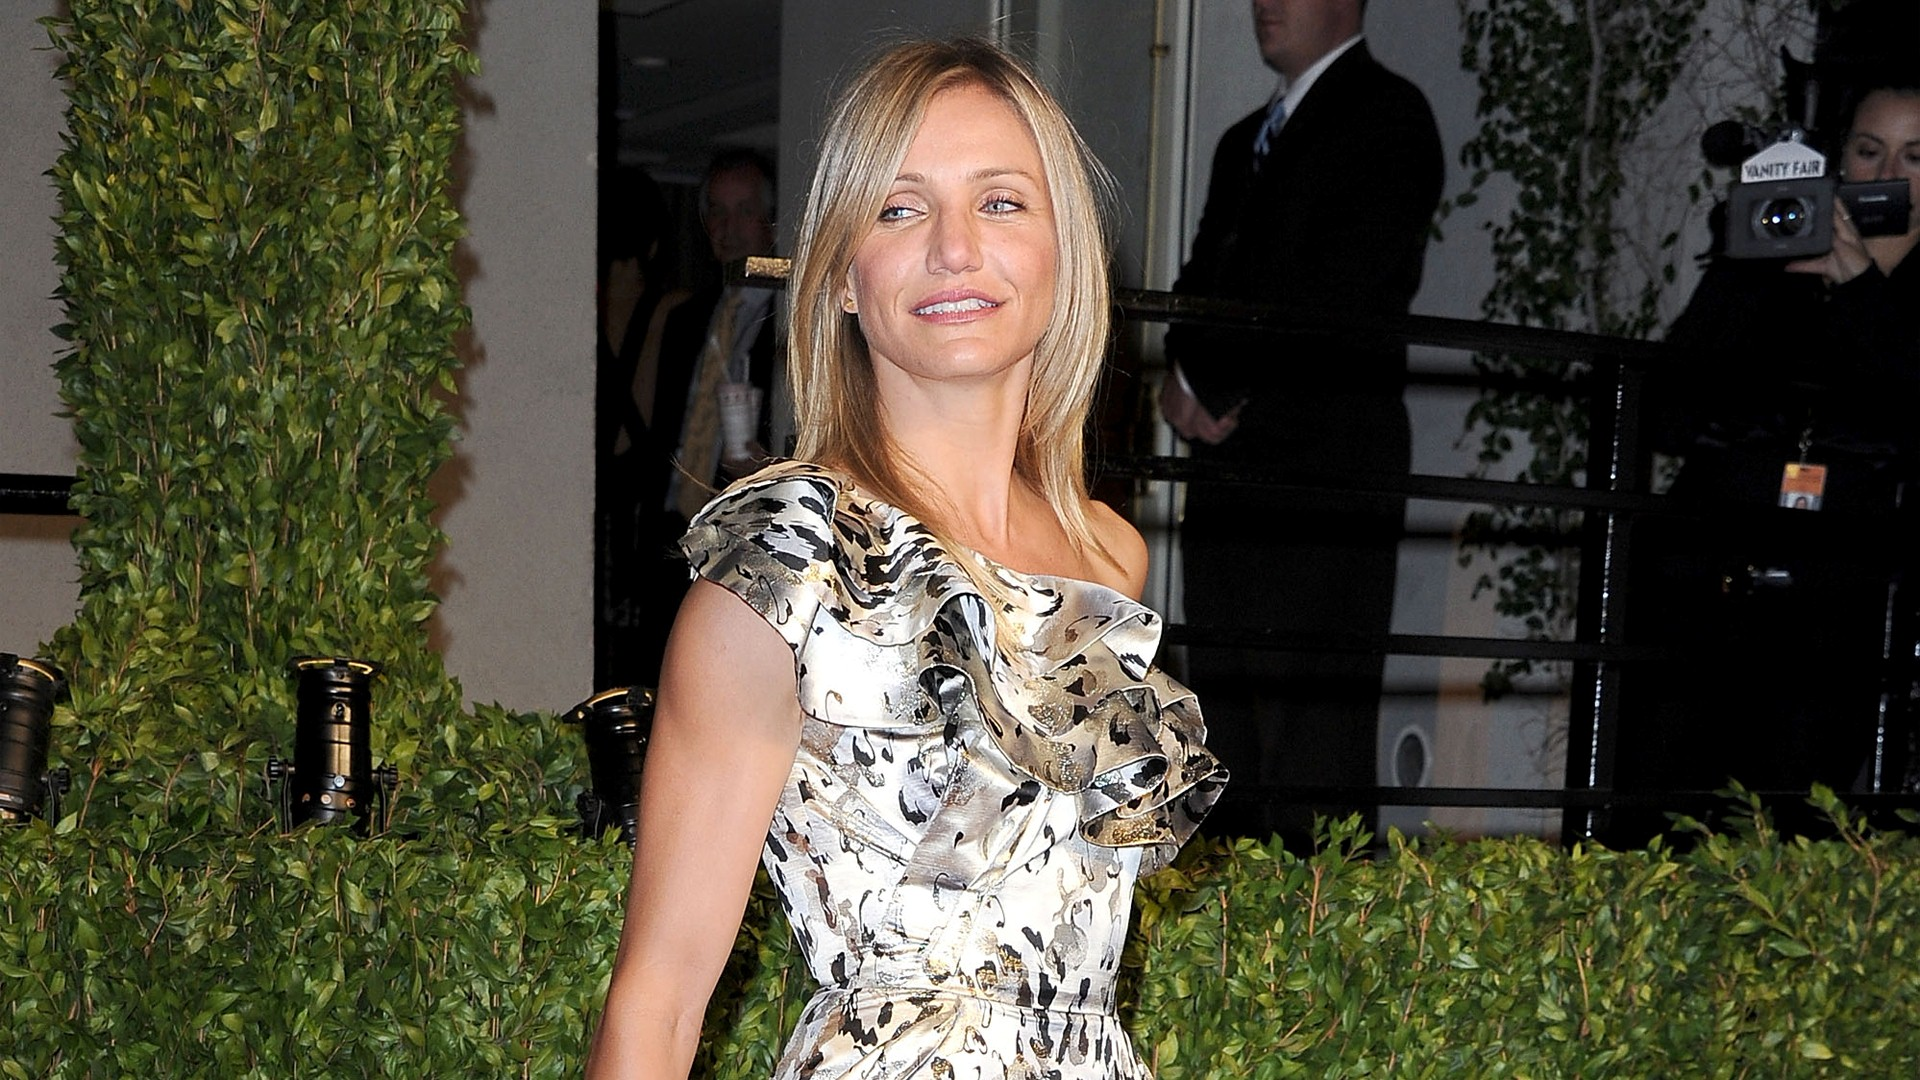 Cameron Diaz During Party Wallpaper HD Wallpapers 1920x1080